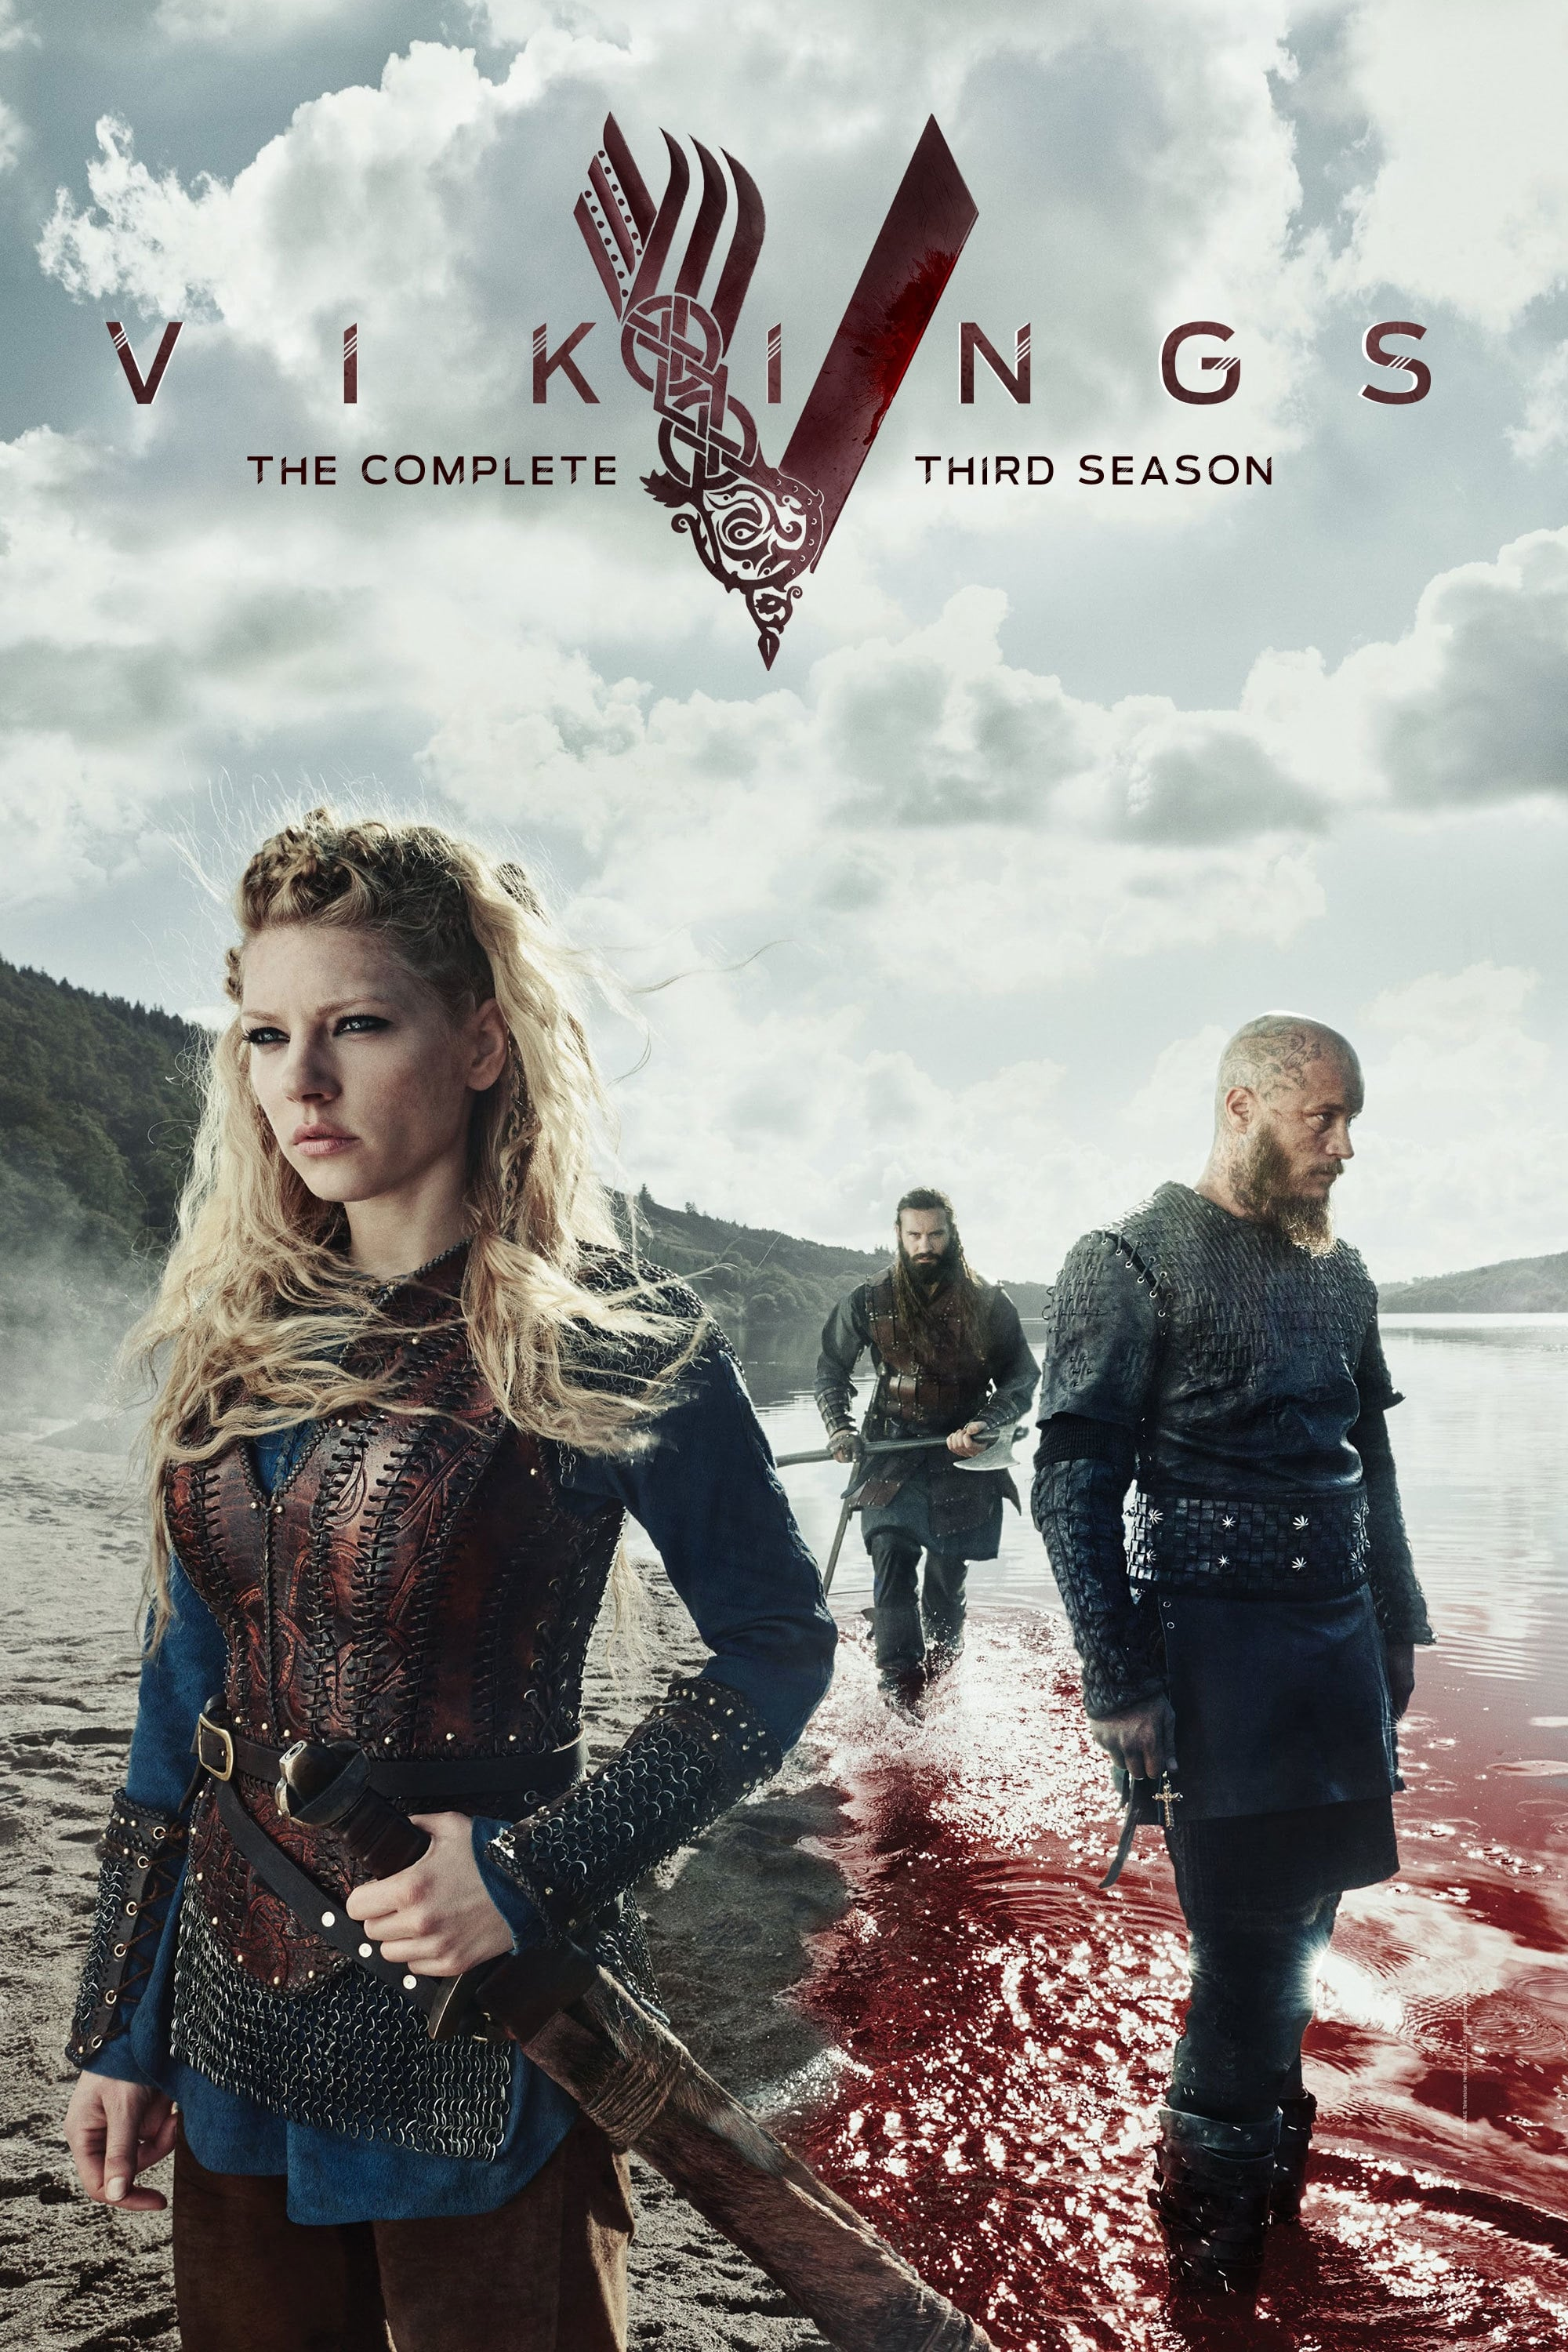 http://arkadascasohbet.com/vikings-3a-temporada-2015-bluray-720p-legendado-torrent-download/